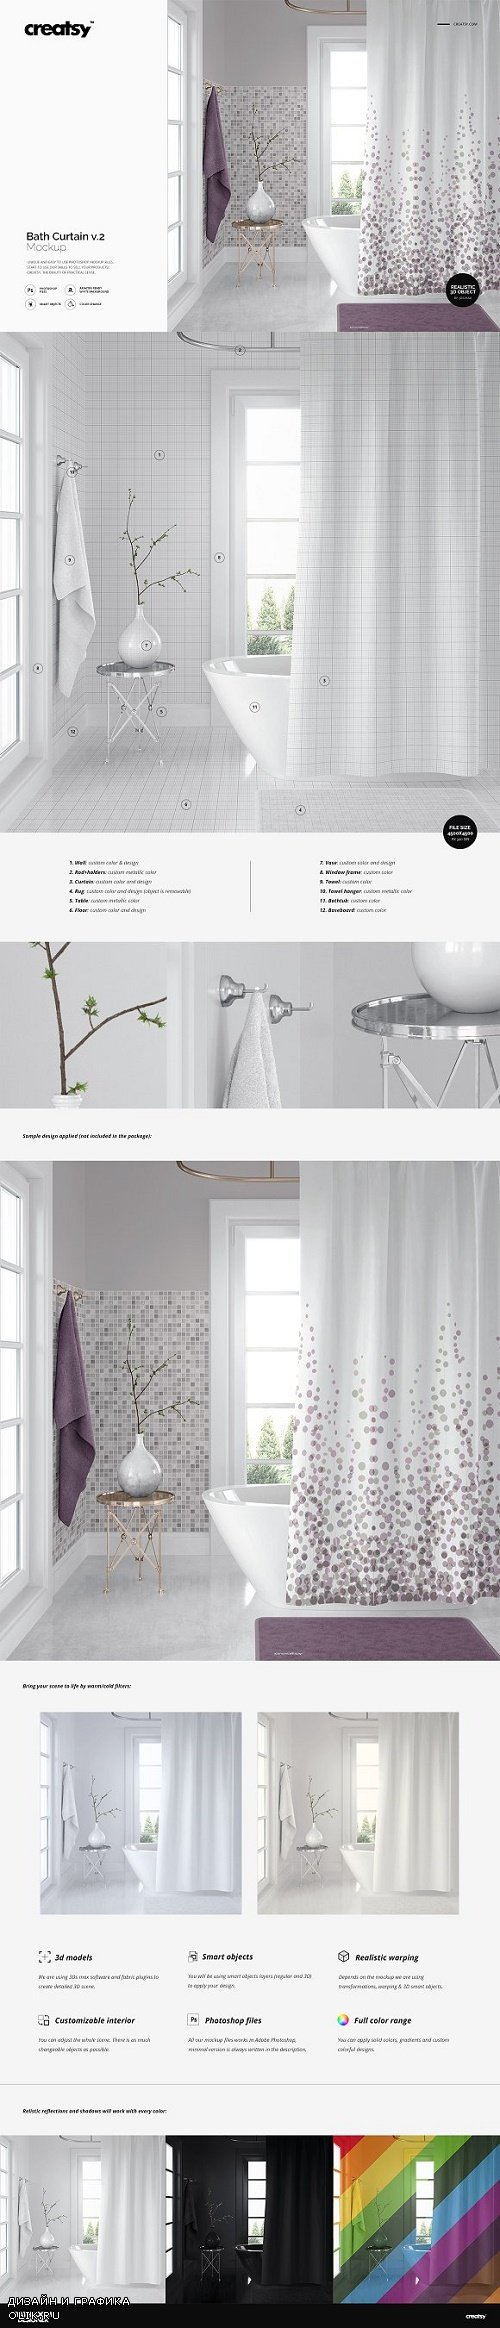 Bath Curtain Mockup 2 2407771